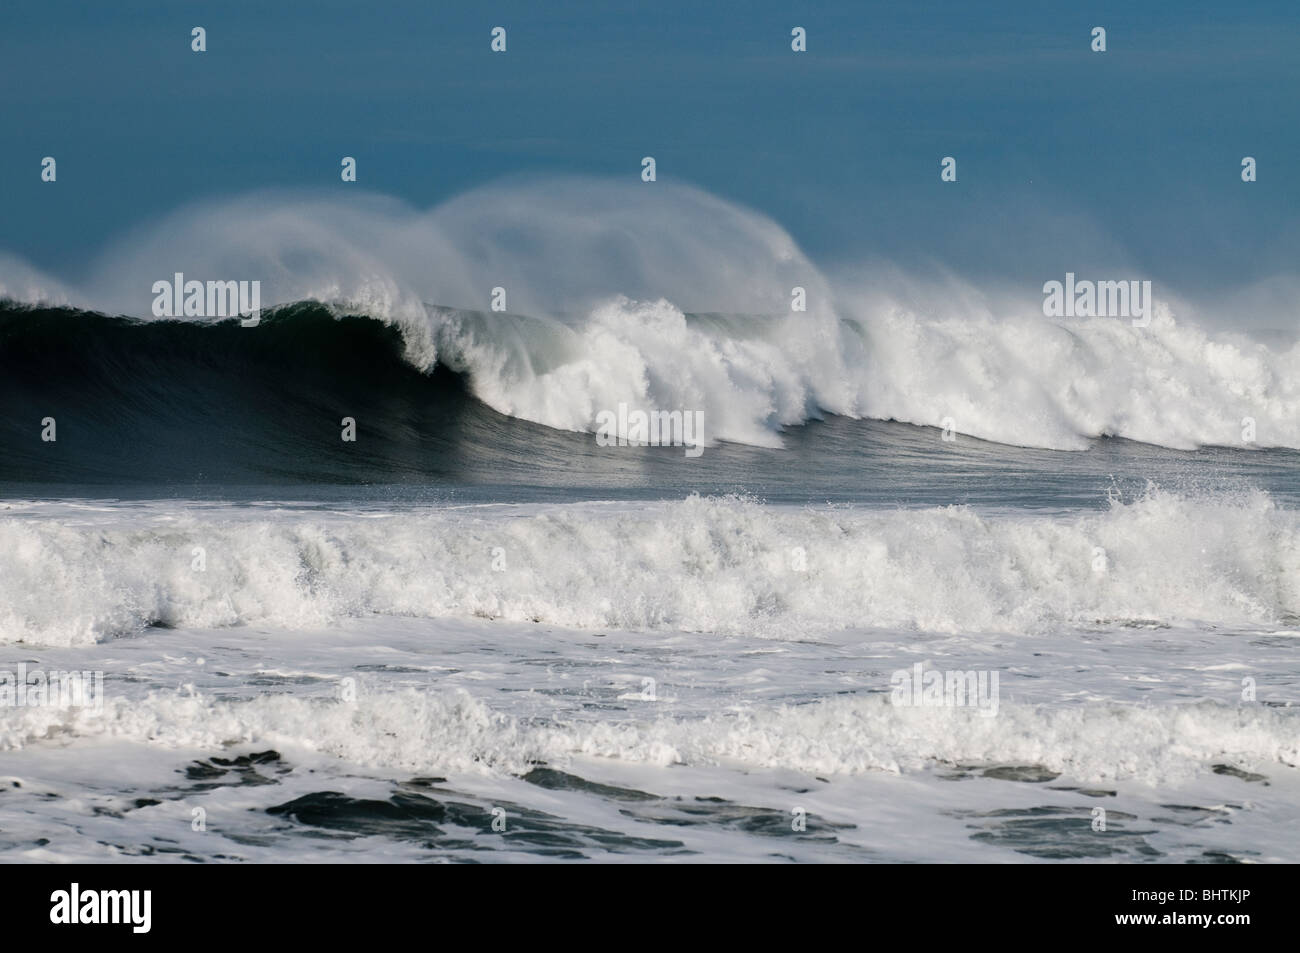 Pacific Ocean Waves crashing - Stock Image